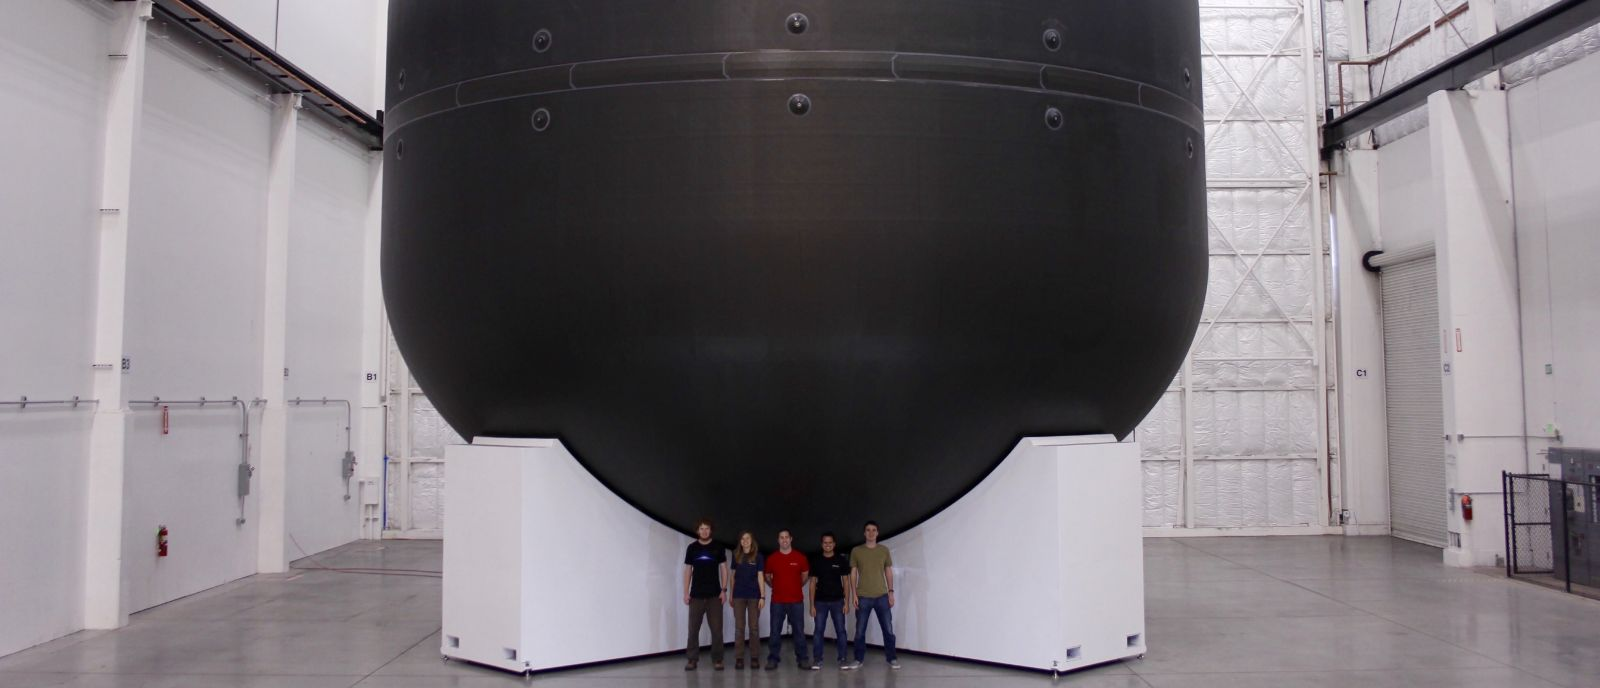 Developmental SpaceX ITS LOX tank. Photo Credit: SpaceX